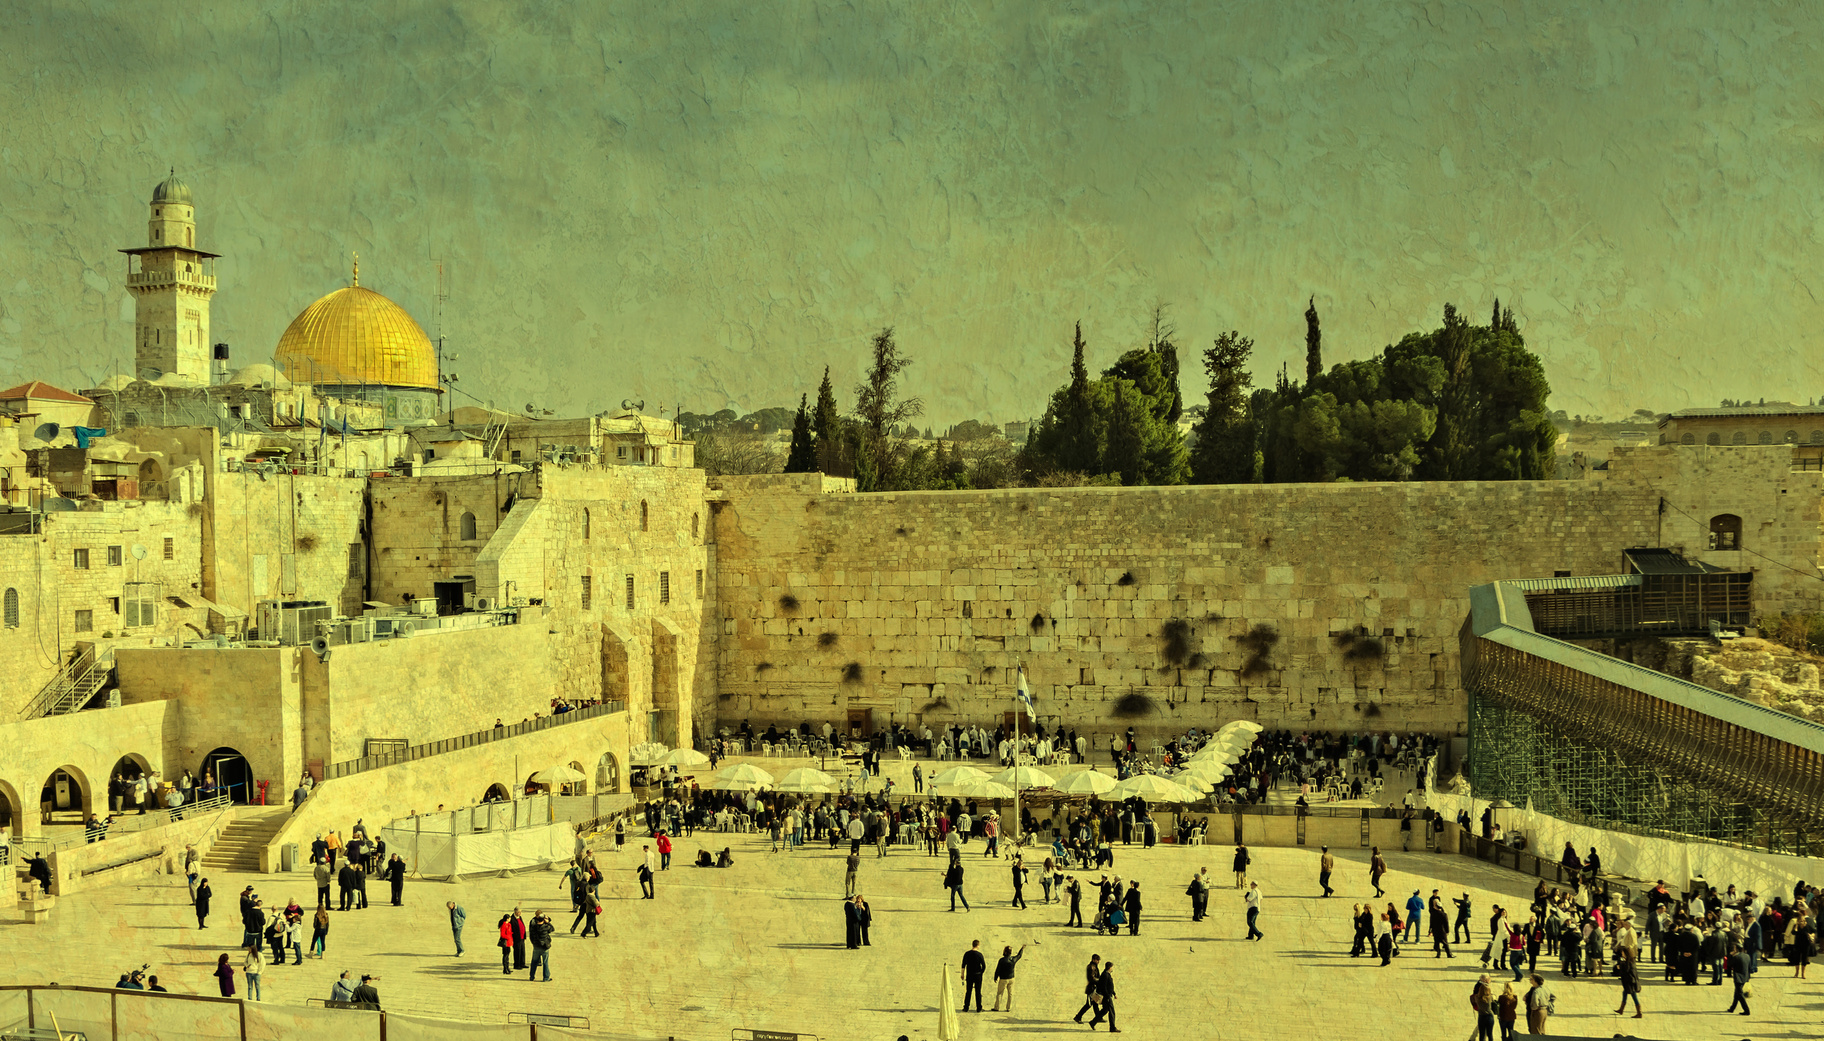 Western wall, Jerusalem. Image toned with vintage textured grunge background for inspiration of retro style